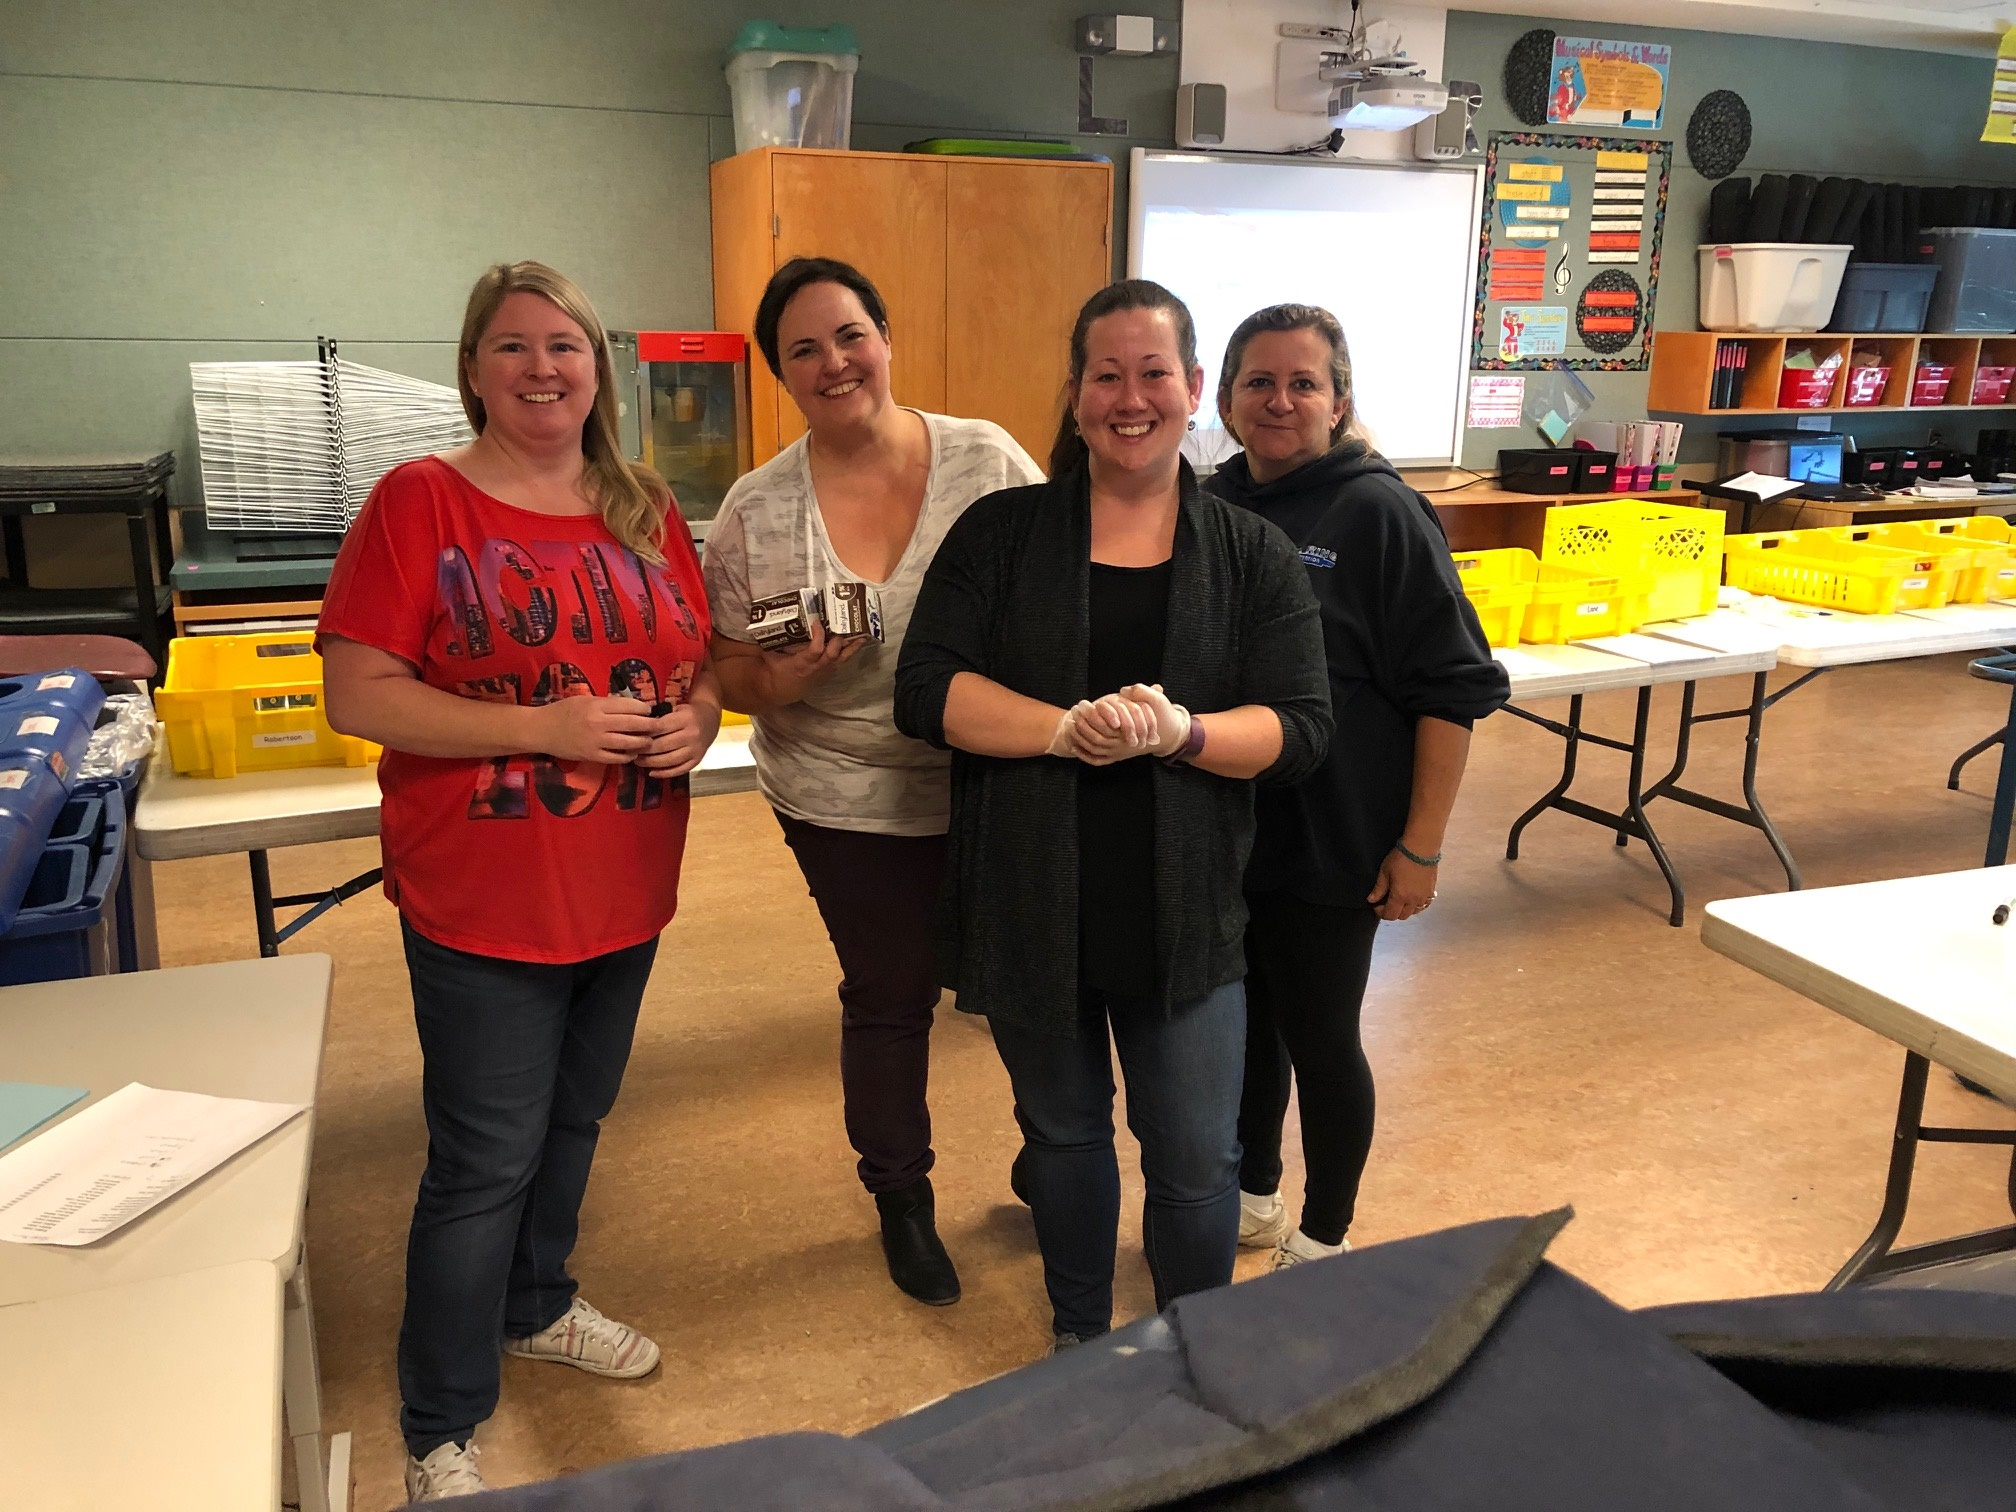 Just a few of our amazing volunteers who help out with pizza day each week. We are so grateful for your support!